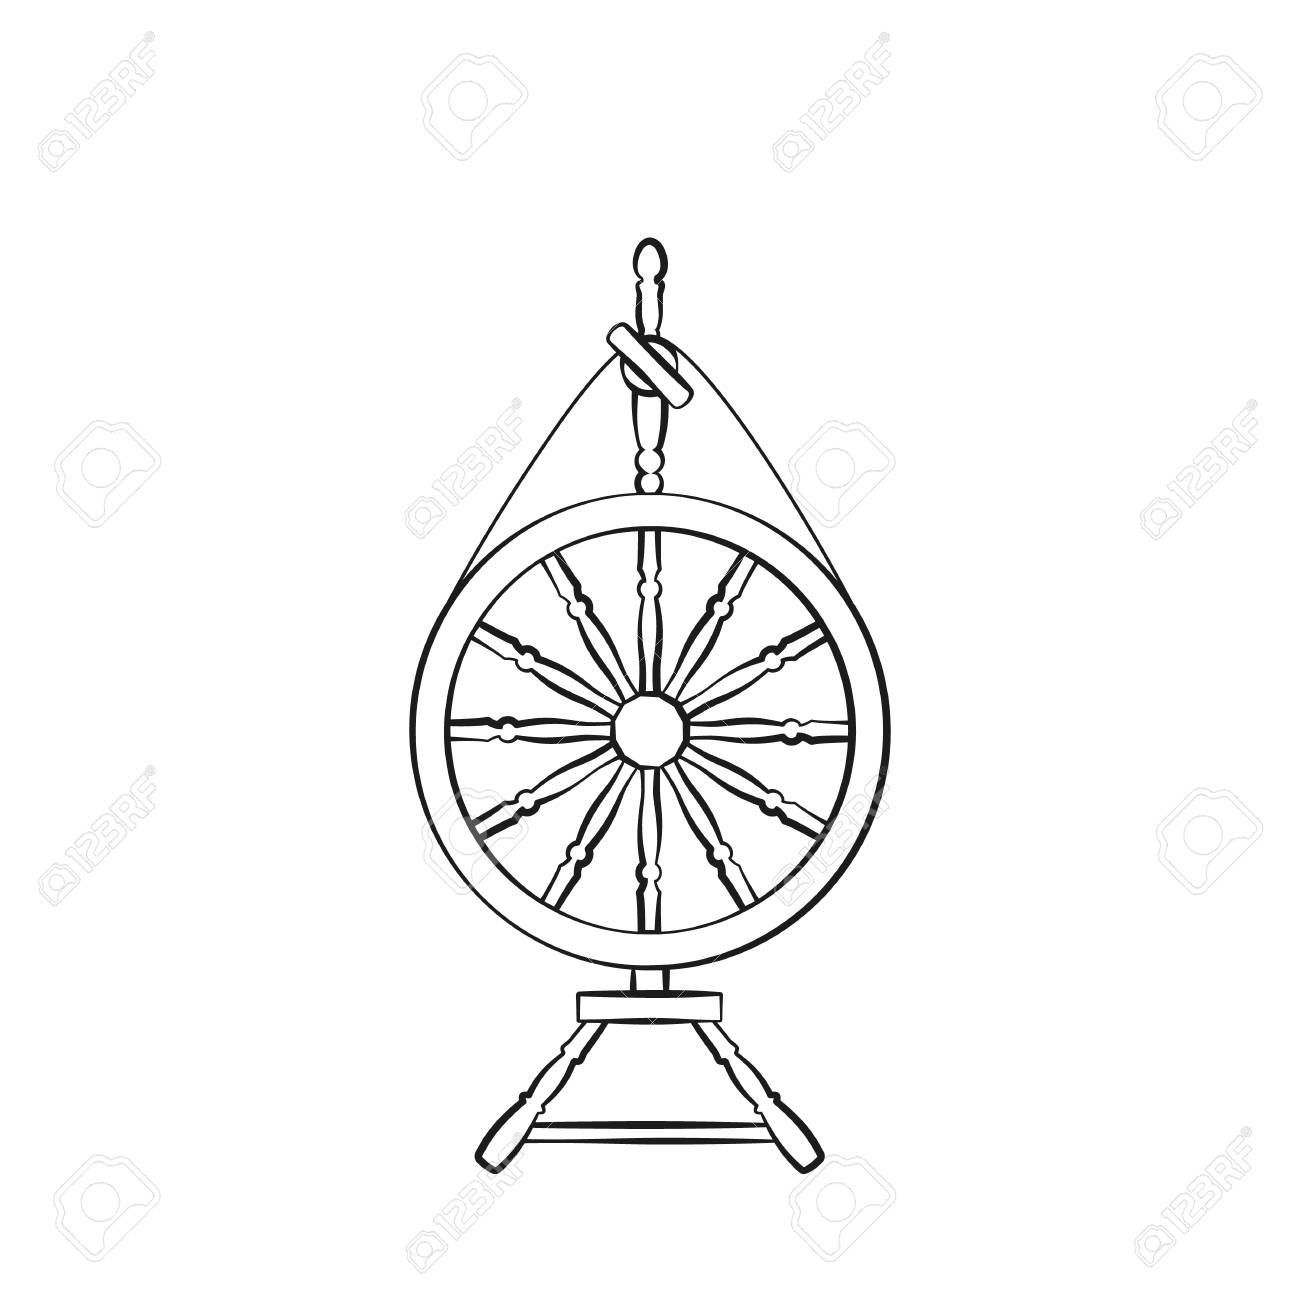 An Antique Spinning Wheel Icon In The Style Of Linear Design Royalty Free Cliparts Vectors And Stock Illustration Image 105137211